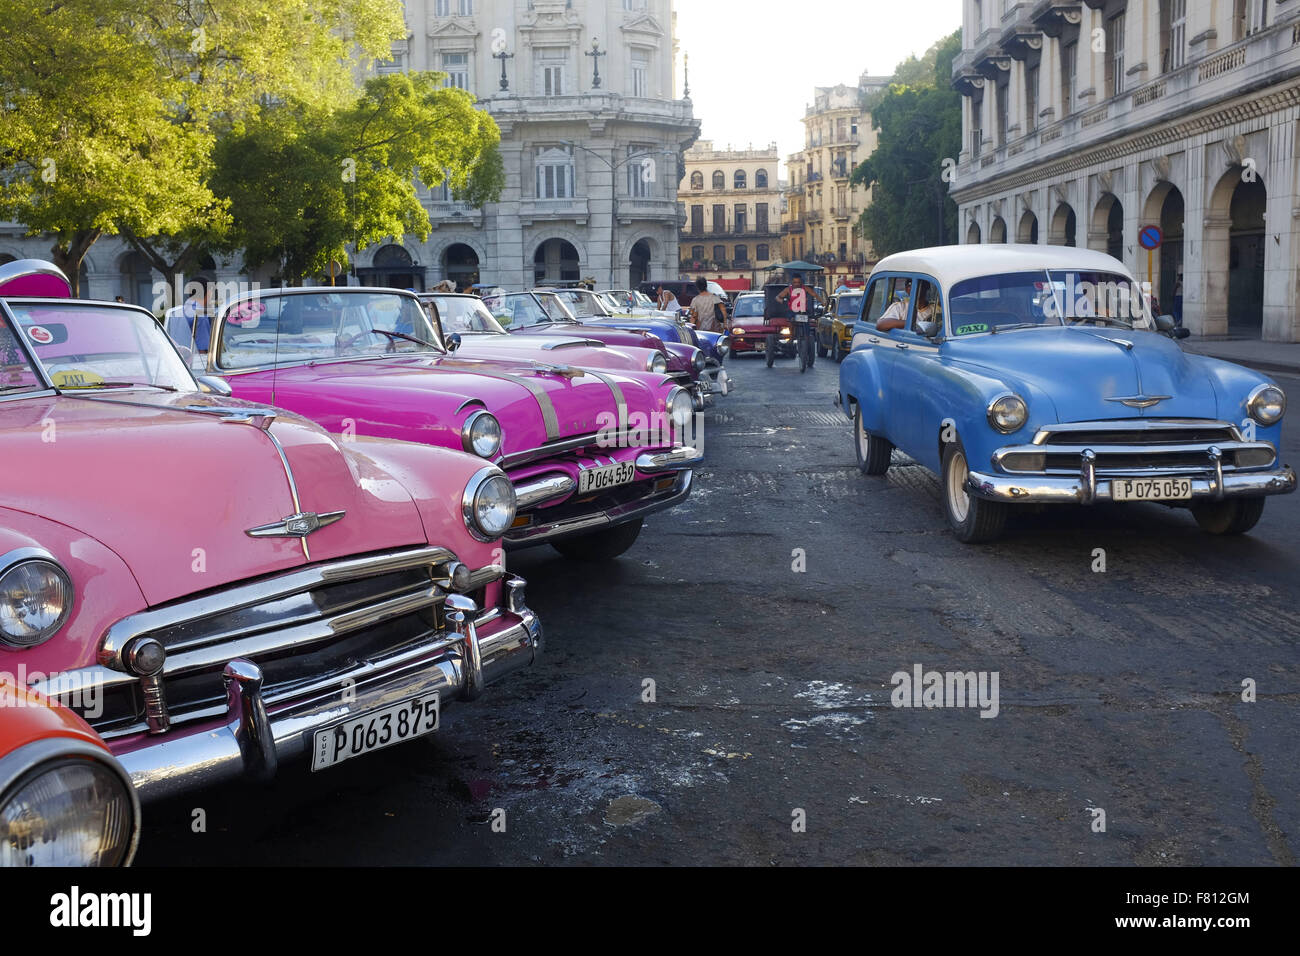 Havana, Cuba. 29th Oct, 2015. Classic old cars are seen lined up ...